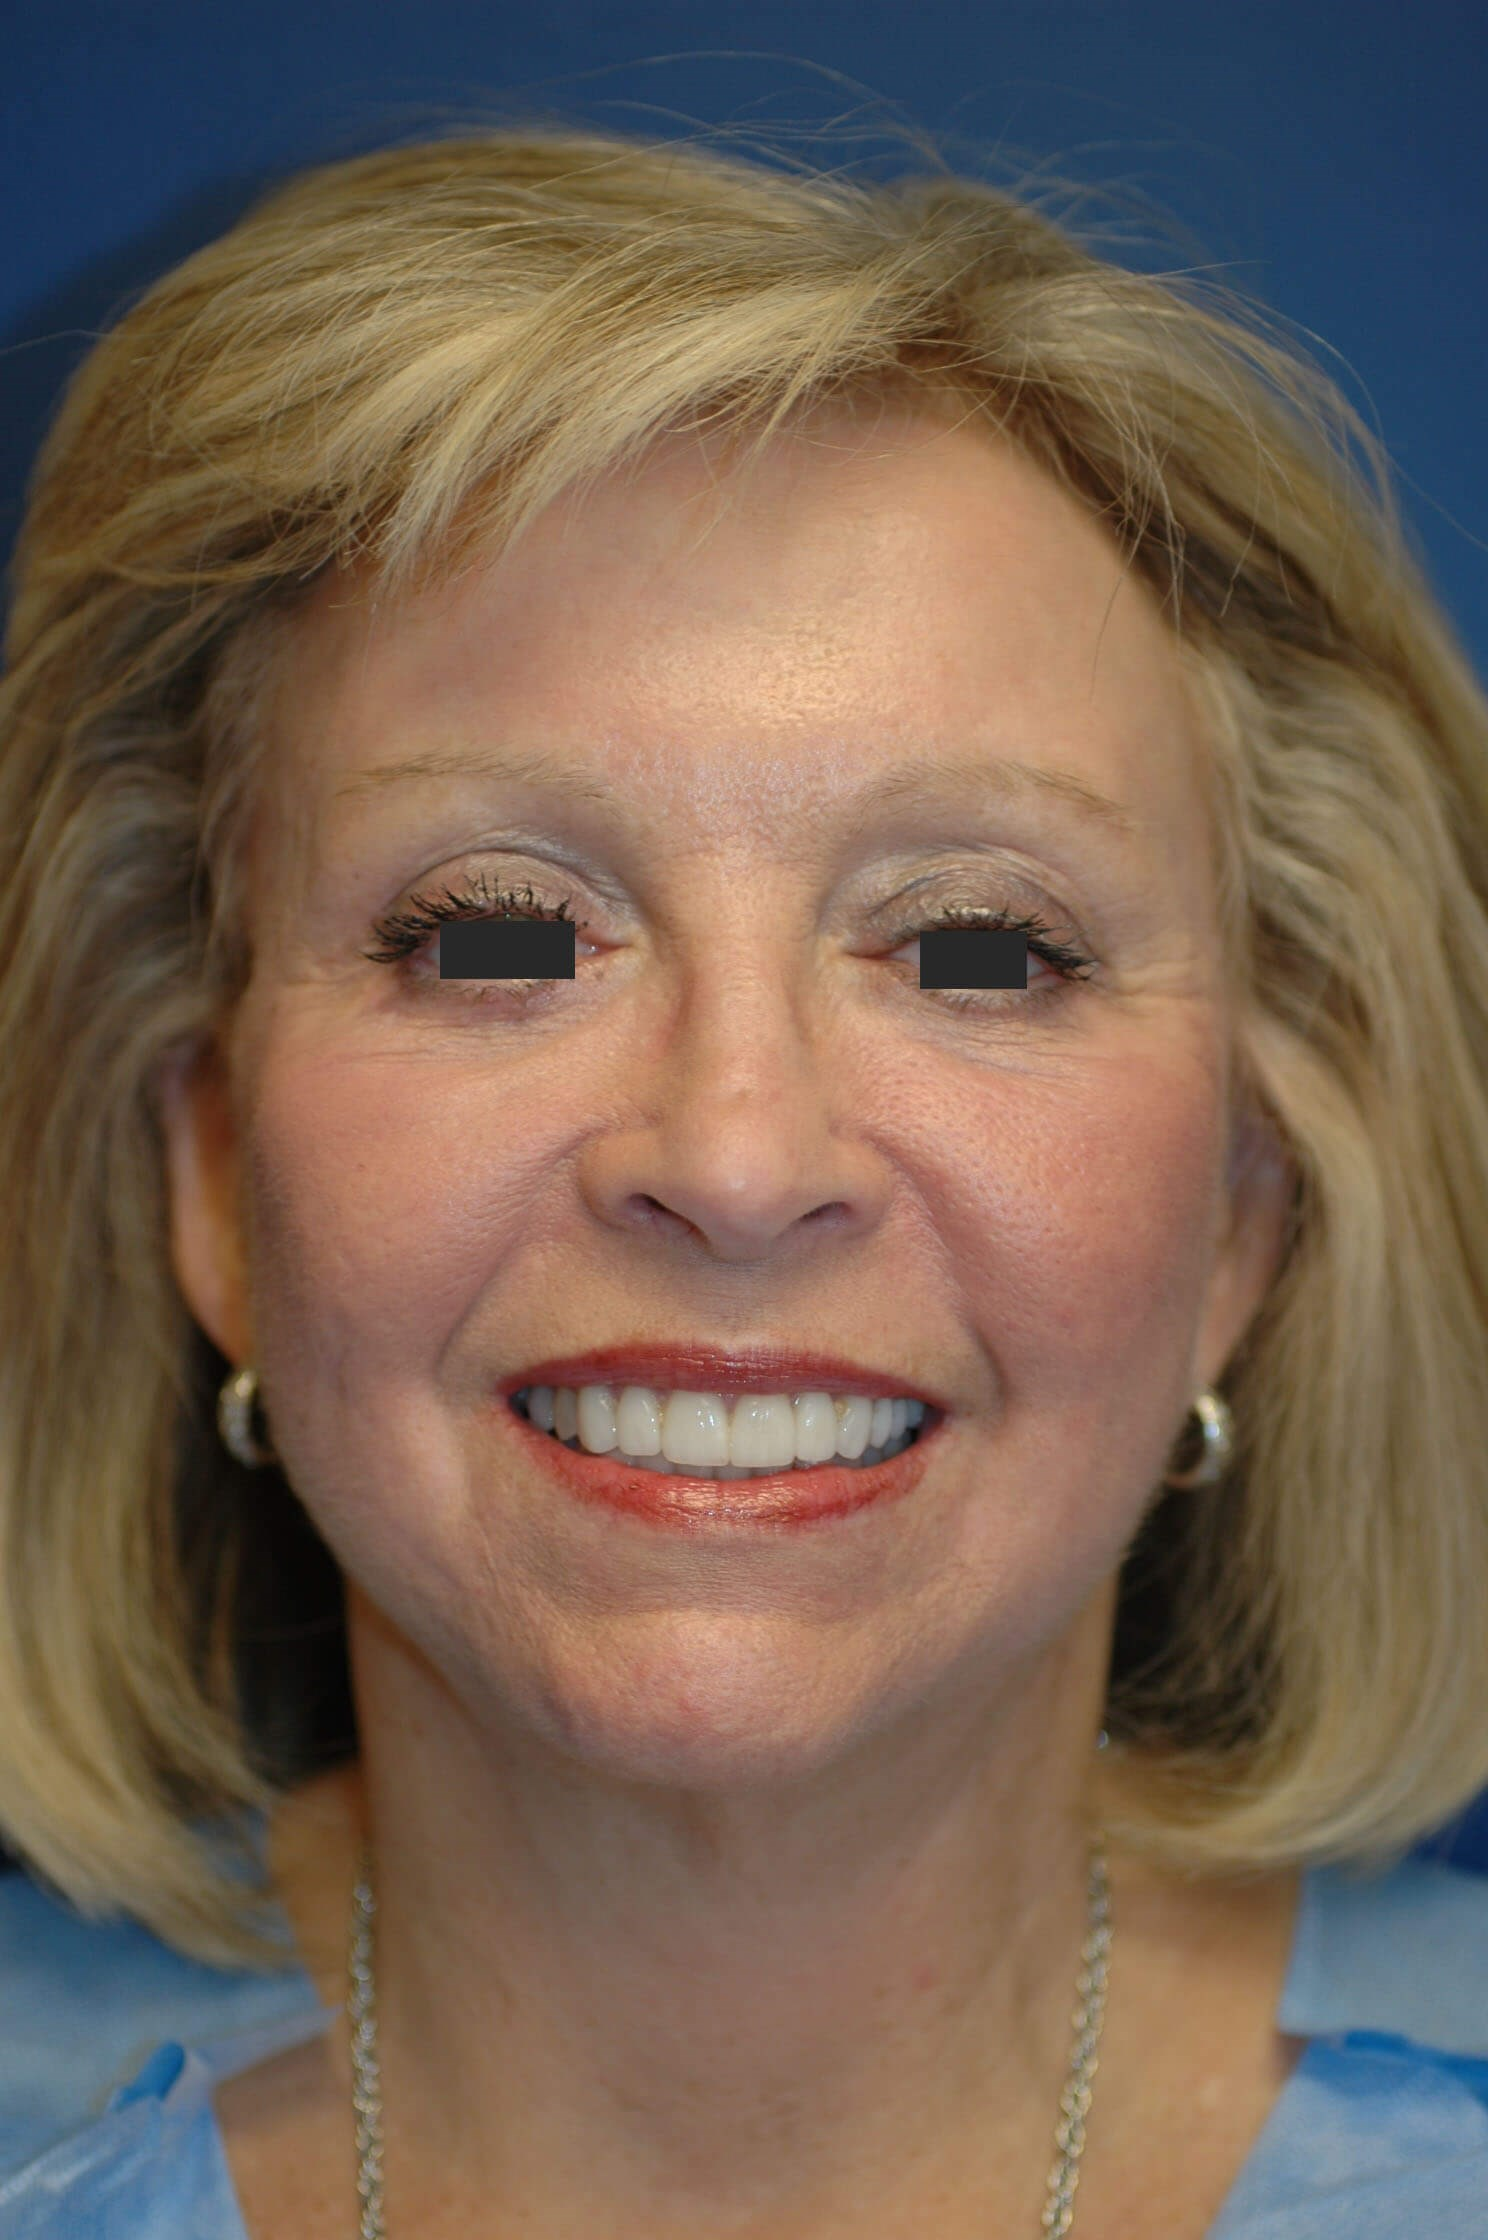 Facelift & Eyelid Surgery After